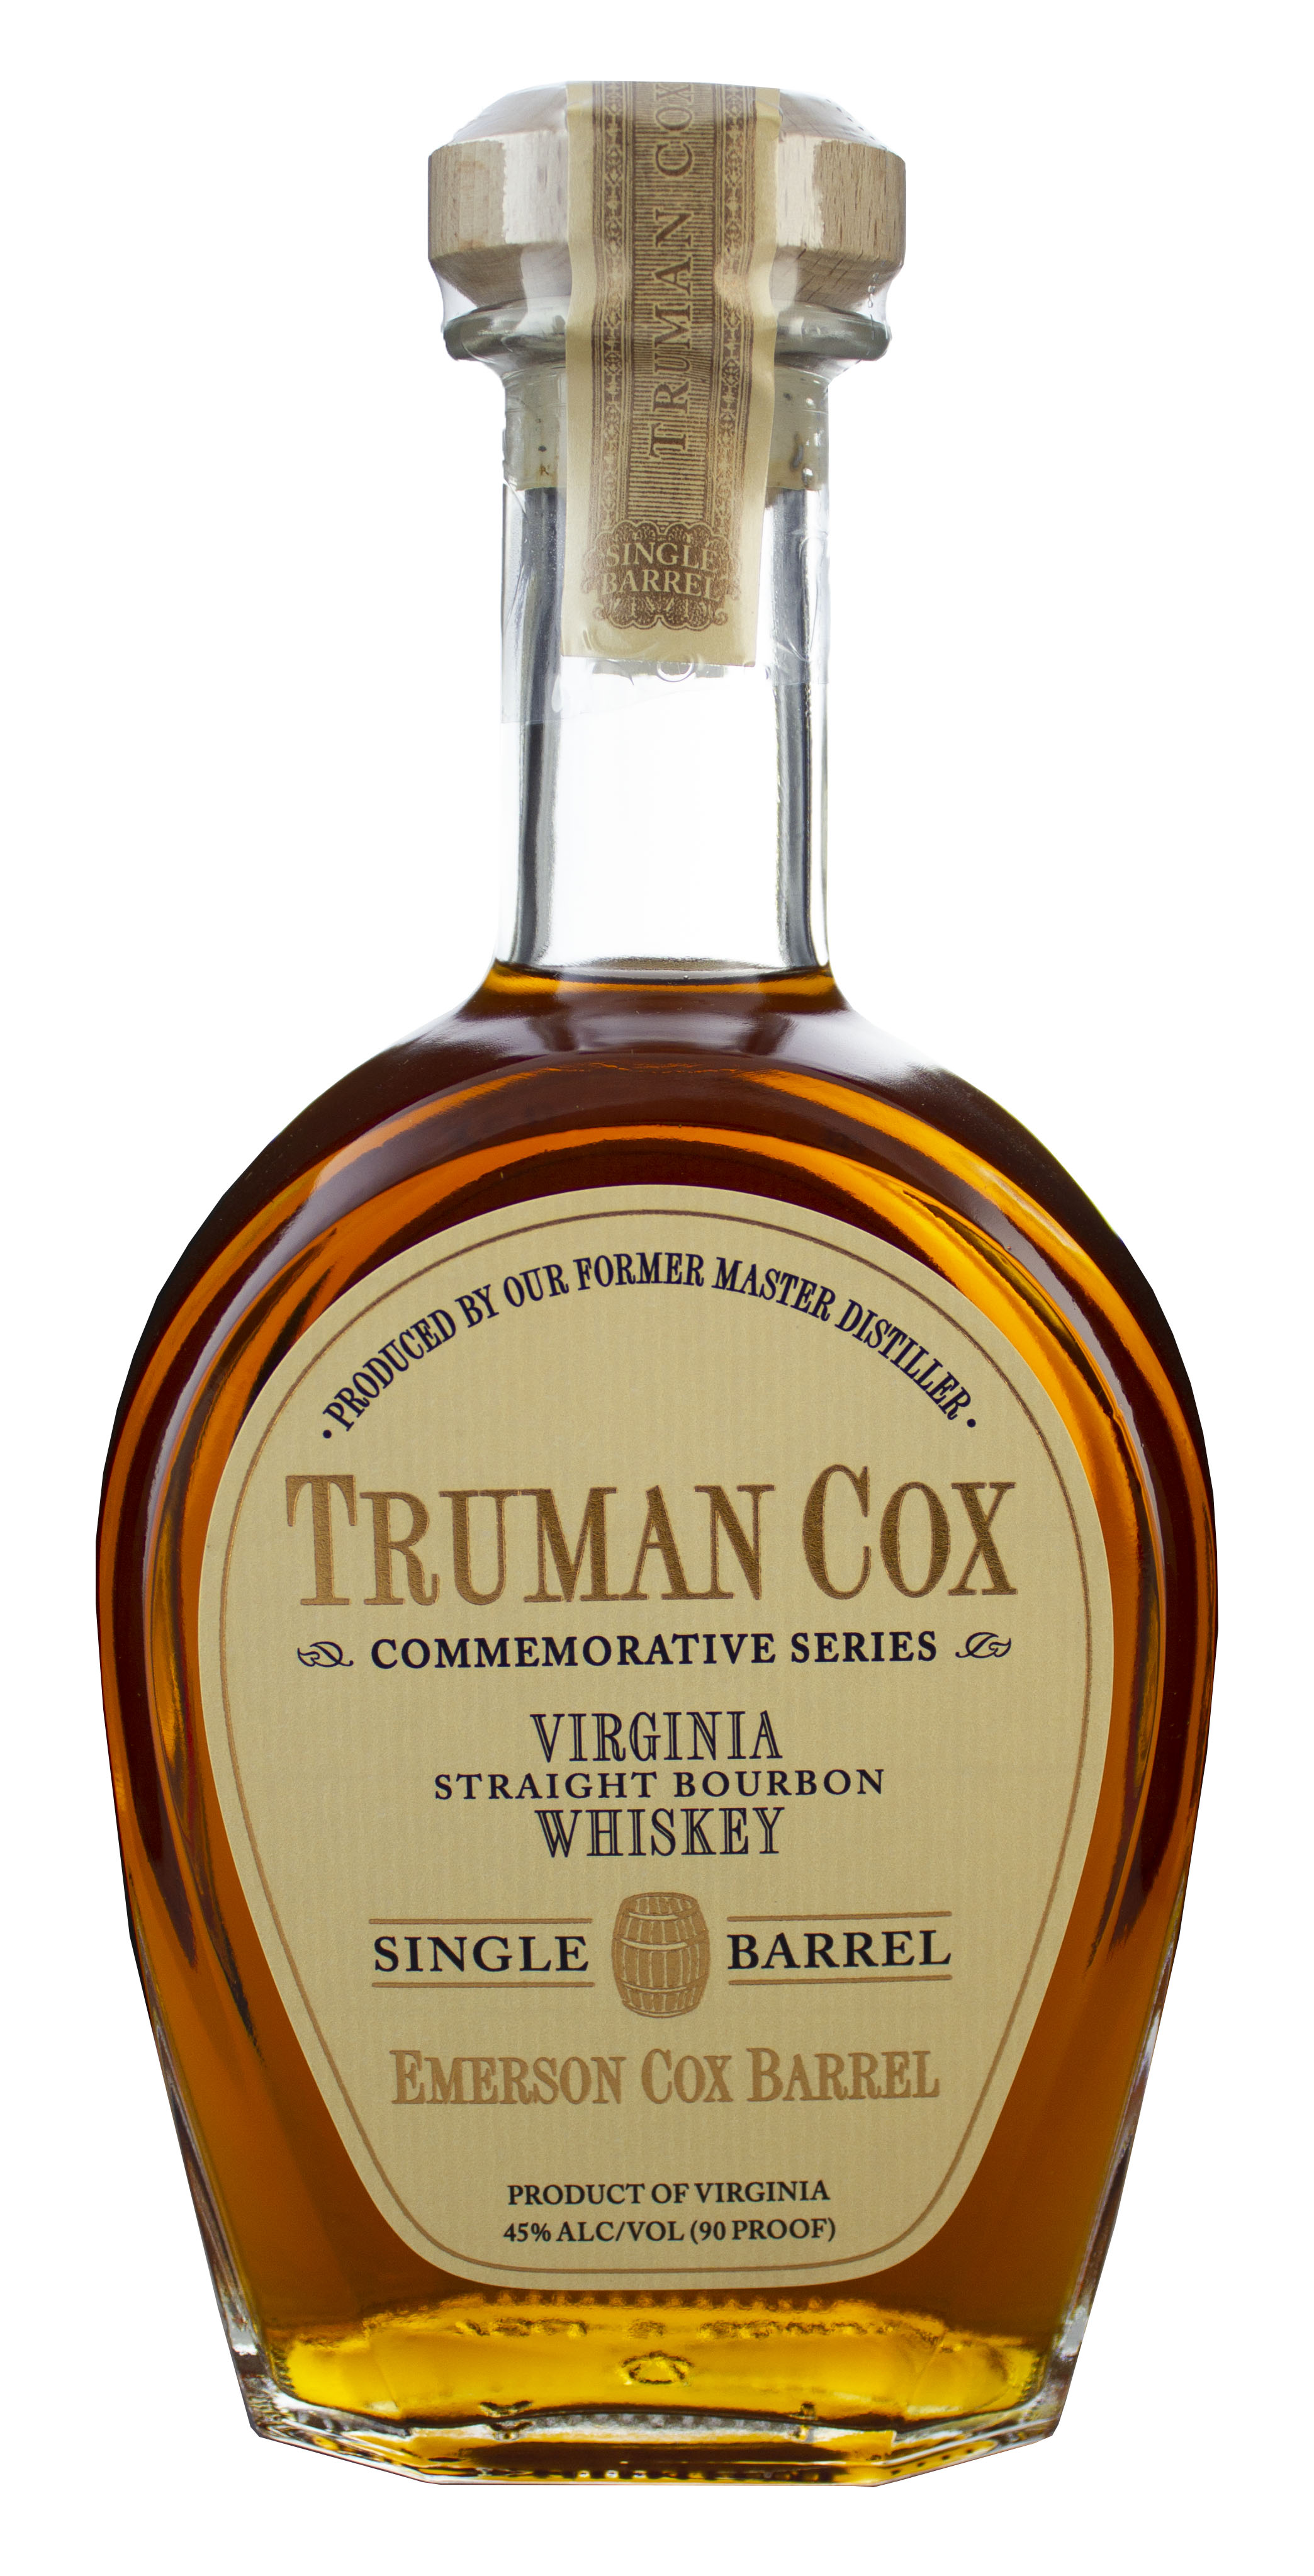 Truman Cox Commemorative Series, A. Smith Bowman Distillery